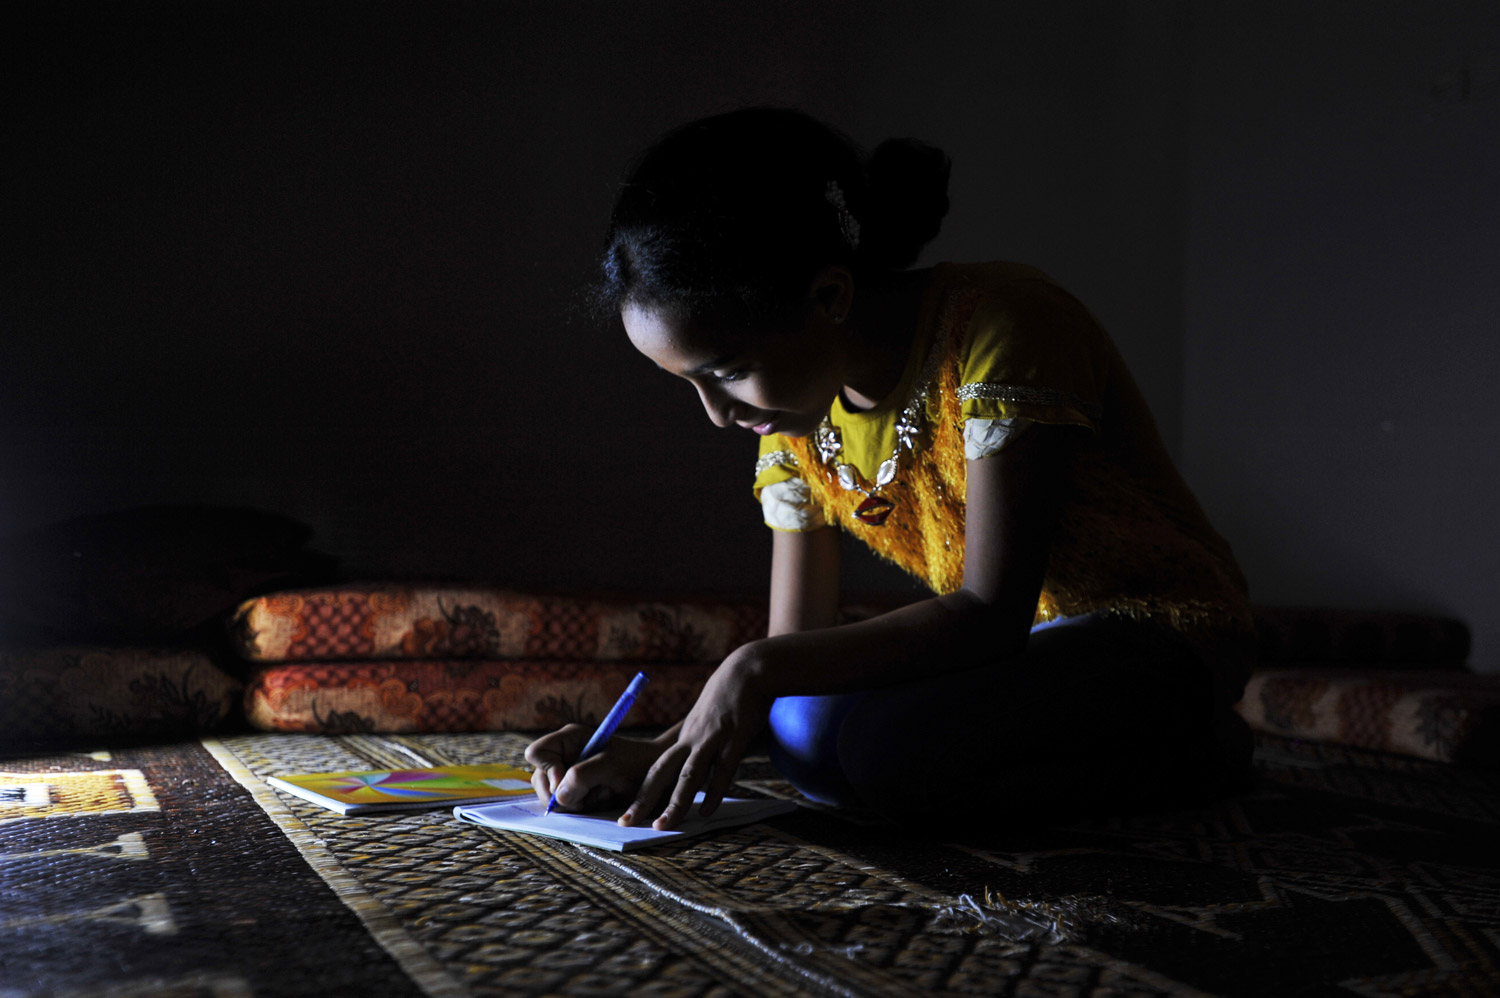 11-year-old Saja, from the area of Sha'af in the eastern side of Gaza City, thinks about the difficult times she had last year when school commenced after the 2014 conflict. She remembers trying to finish her homework by the dim lights during consistent electricity cuts. Since 2006, the Gaza Strip has been plagued by a chronic electricity crisis with rolling blackouts that last between 12 to 16 hours per day that heavily affect the most populated areas. © 2015 UNRWA Photo by Ahmad Awad